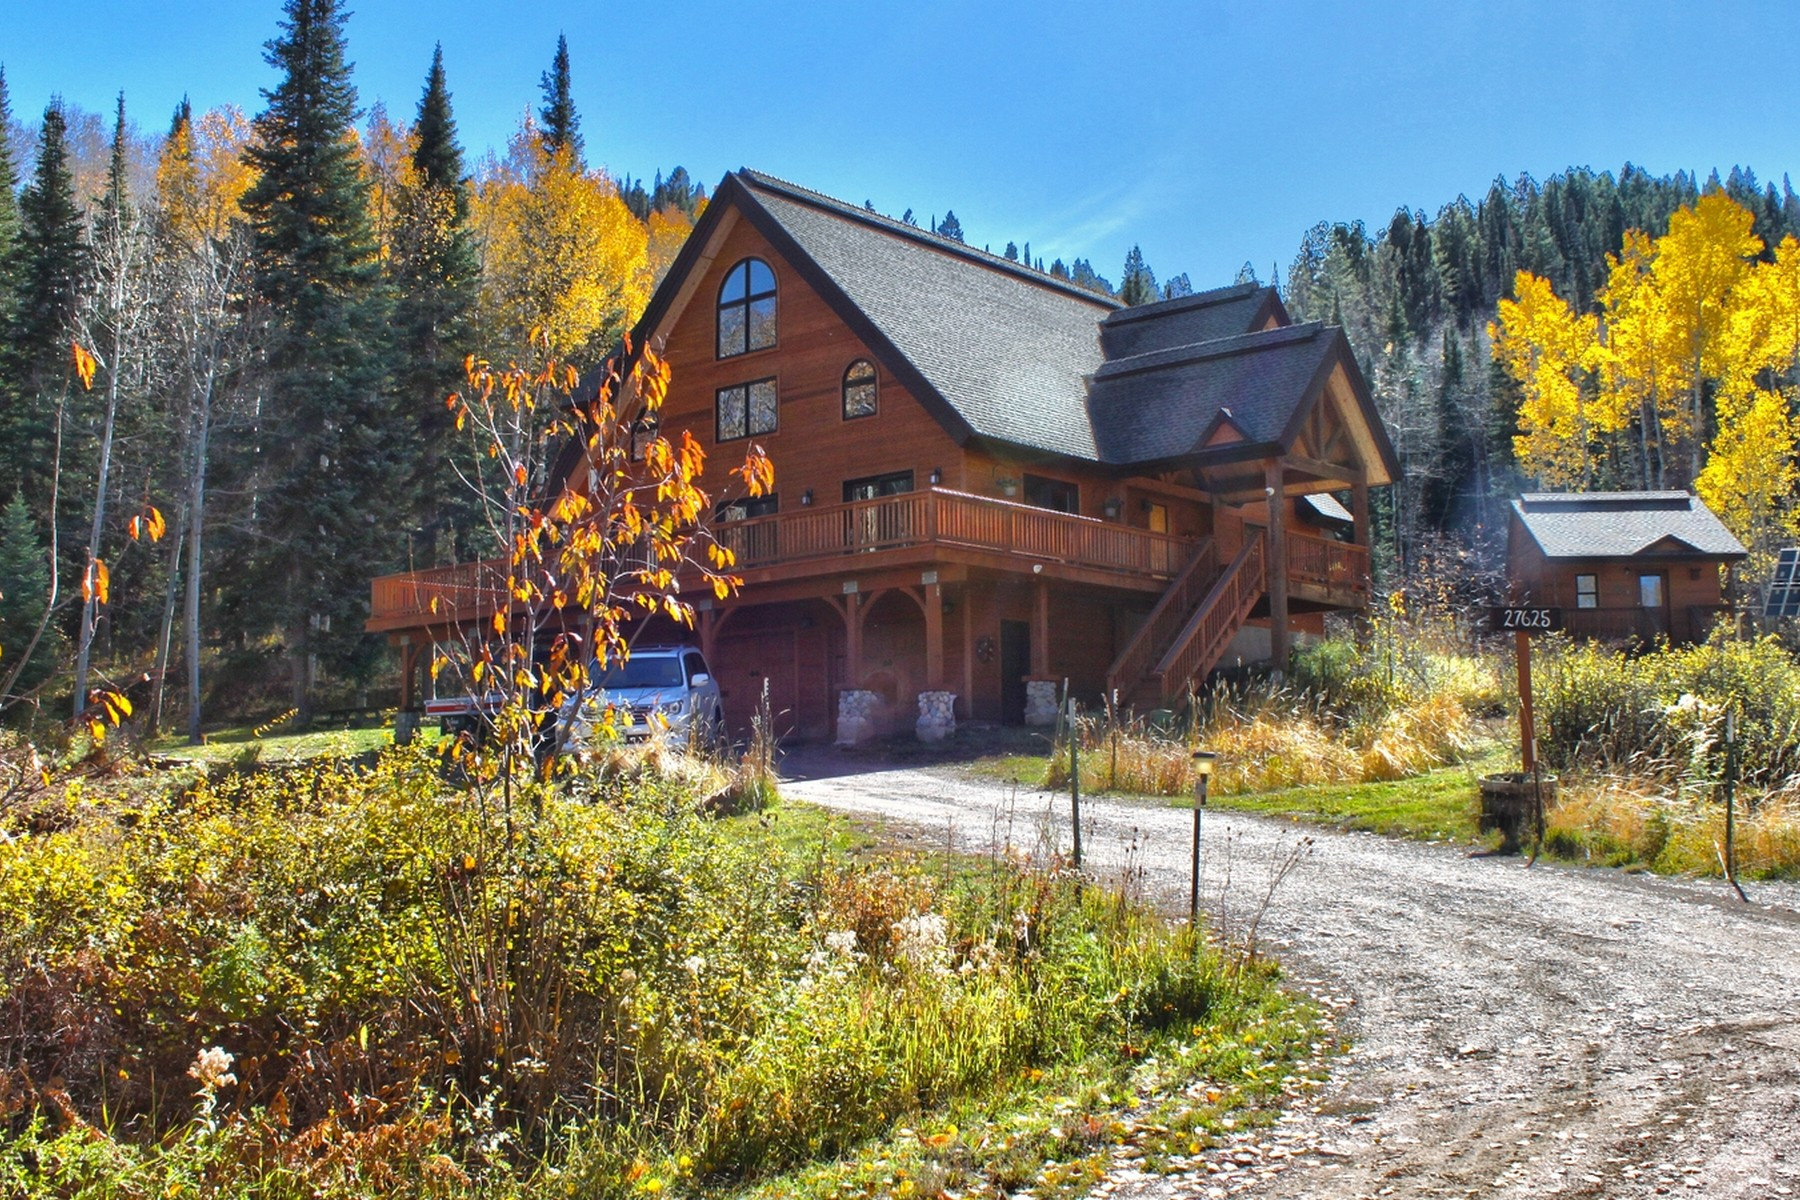 27625 Grouse Creek Park Rd, Steamboat Springs, CO 80487